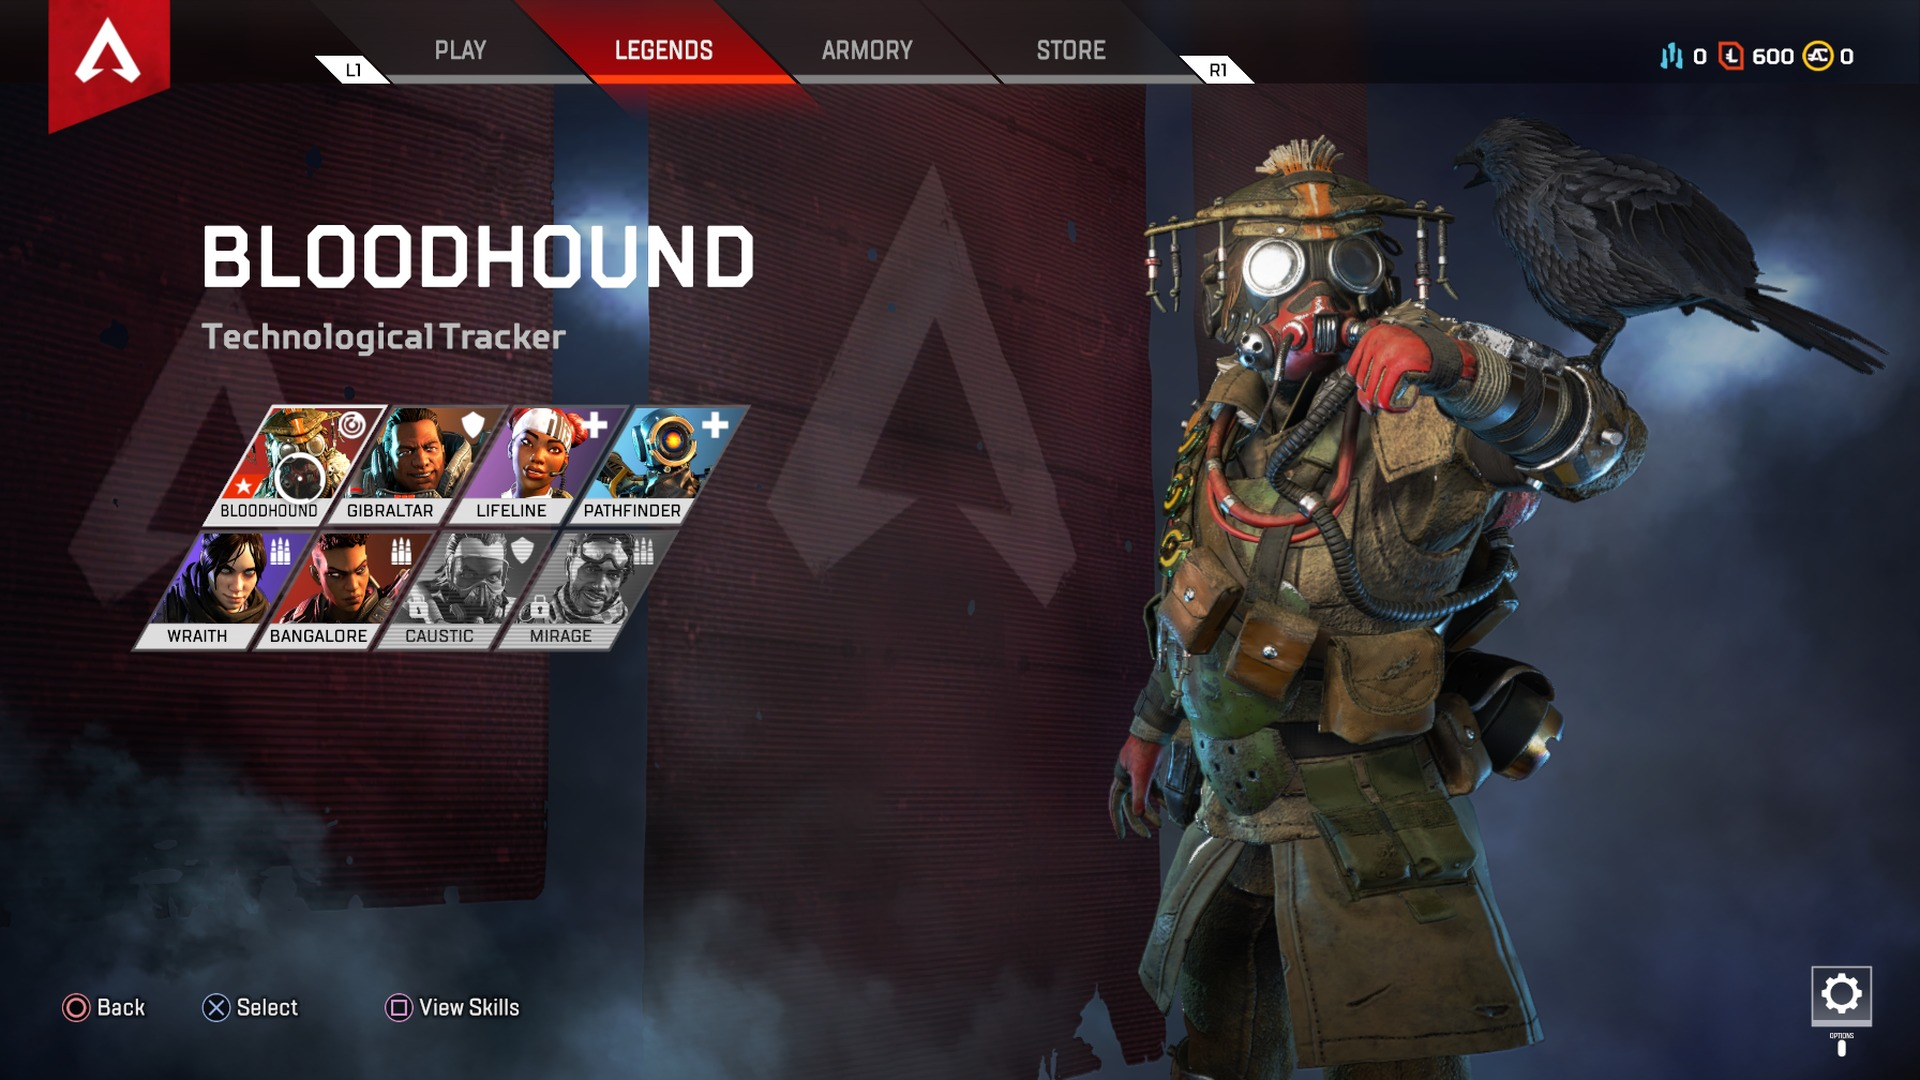 Apex Legend Review: The Perfect Fortnite Alternative?